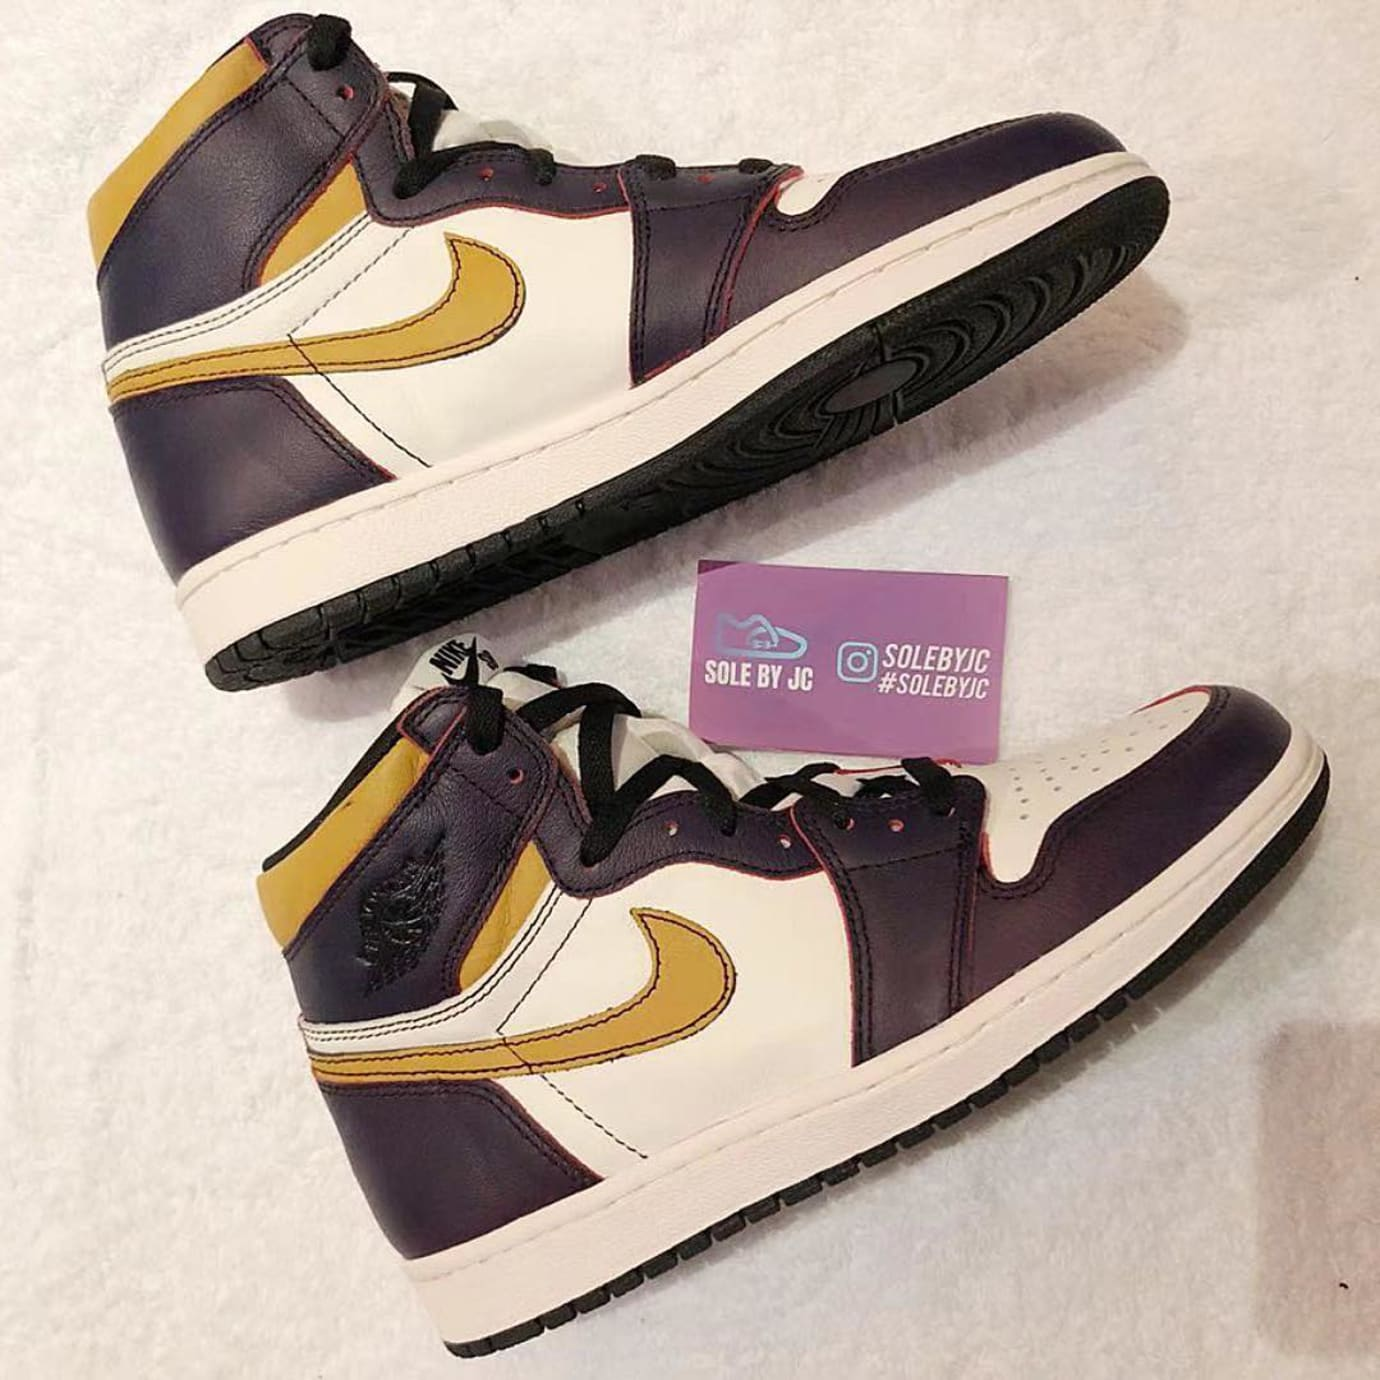 Nike SB x Air Jordan 1 'Lakers' CD6578-507 4